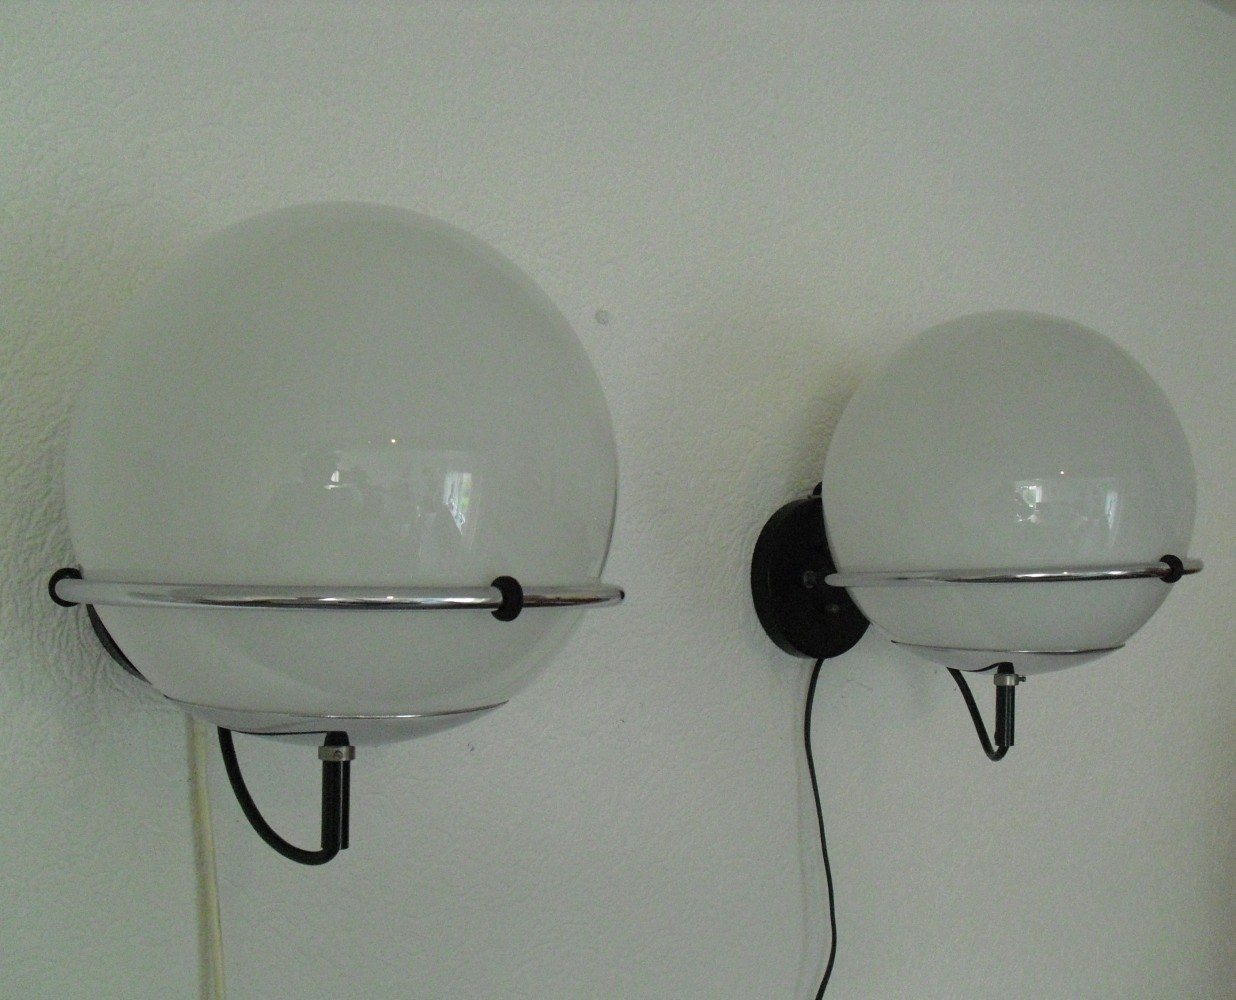 Wall Mounted Globe Lamp : 2 Globe / C-1751 wall lamps from the sixties by Frank Ligtelijn for Raak Amsterdam #58705